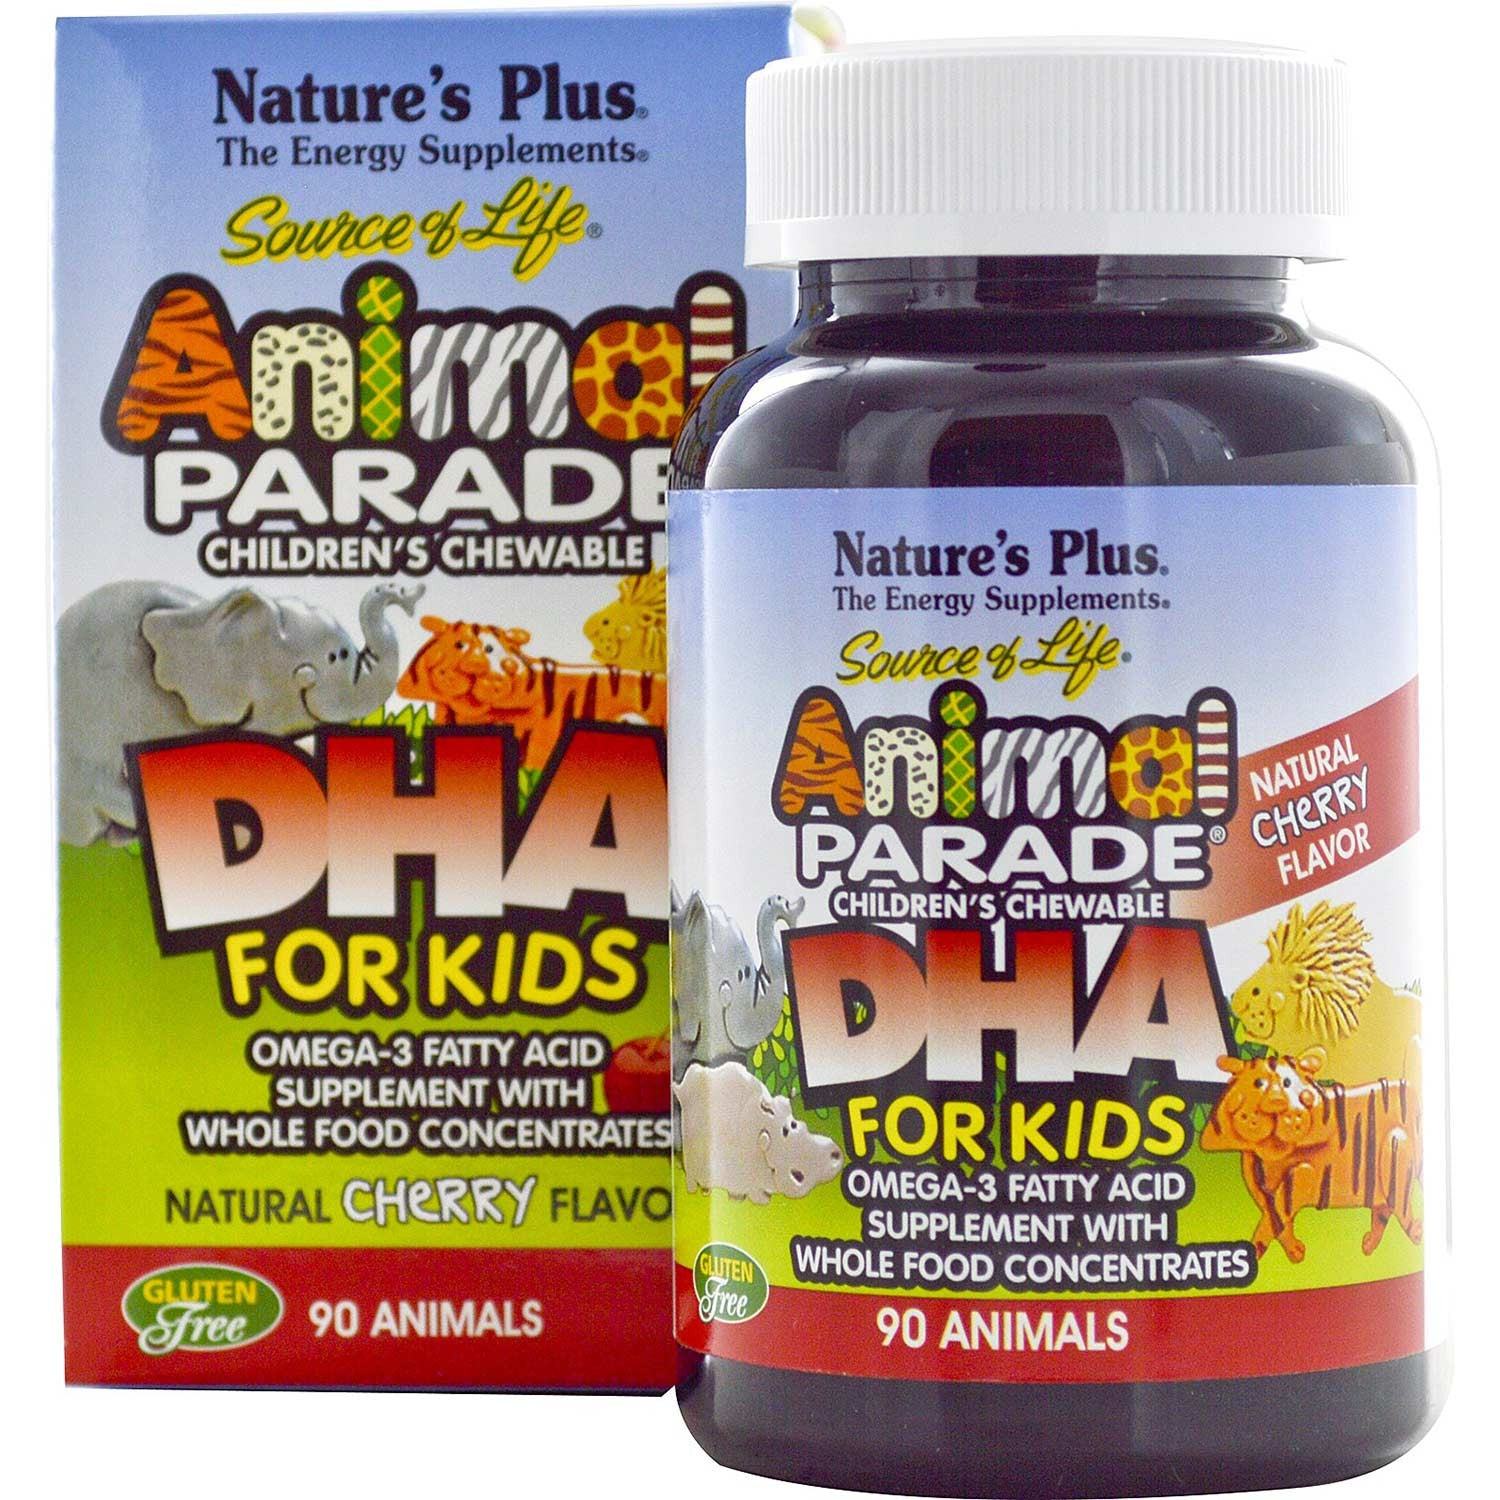 Natures Plus Source of Life Animal Parade Chewable DHA For Kids - Cherry, 90 tabs.-NaturesWisdom